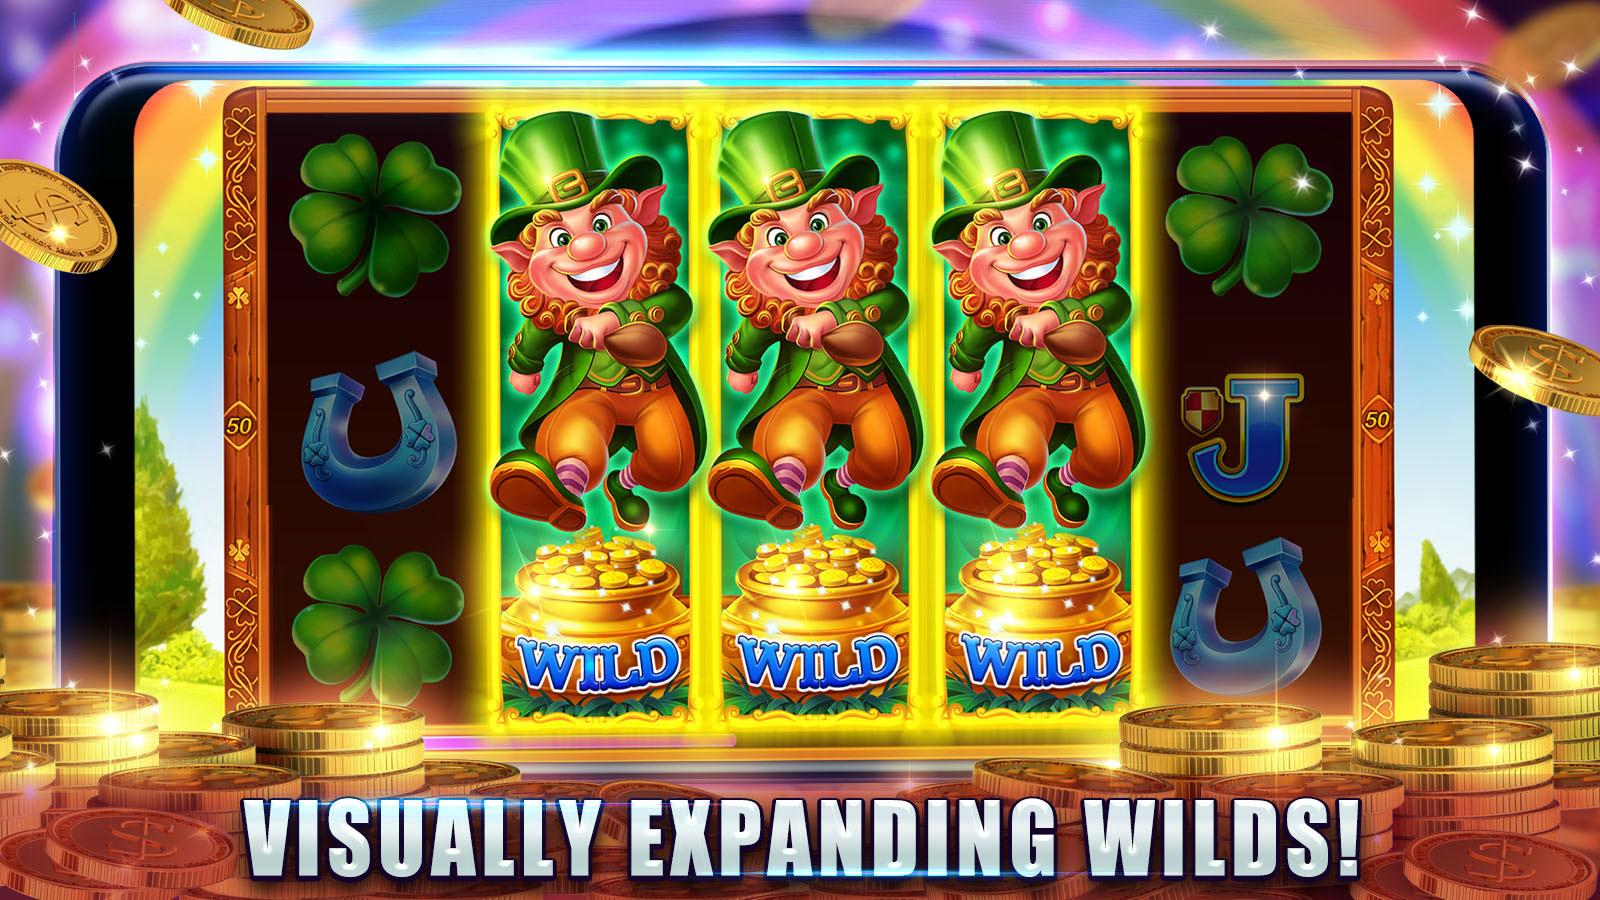 slots of vegas free slot games android apps on google play